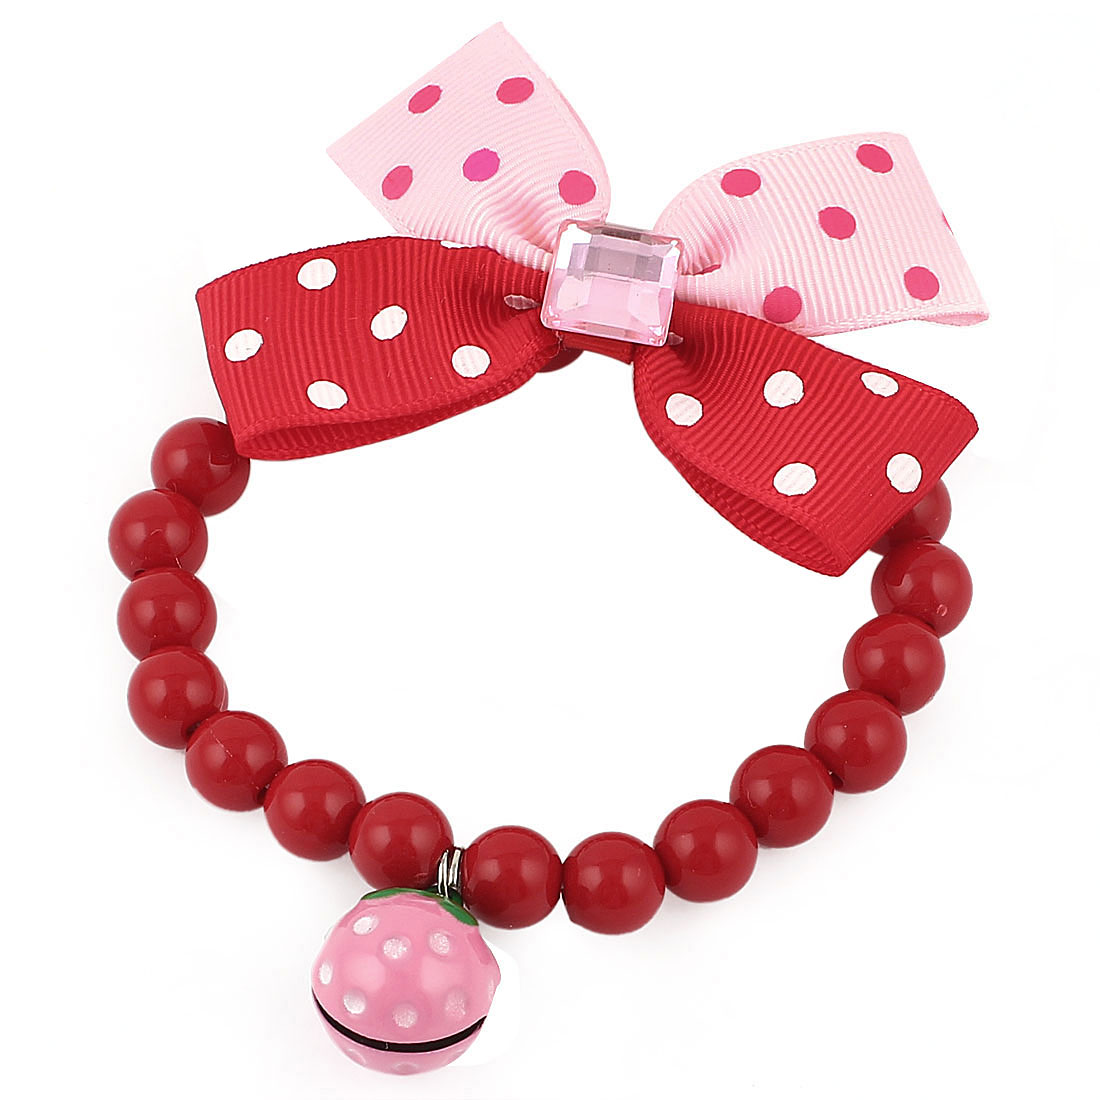 Metal Bell Pendant Bowtie Accent Pet Dog Plastic Beads Collar Necklace Red Pink XS